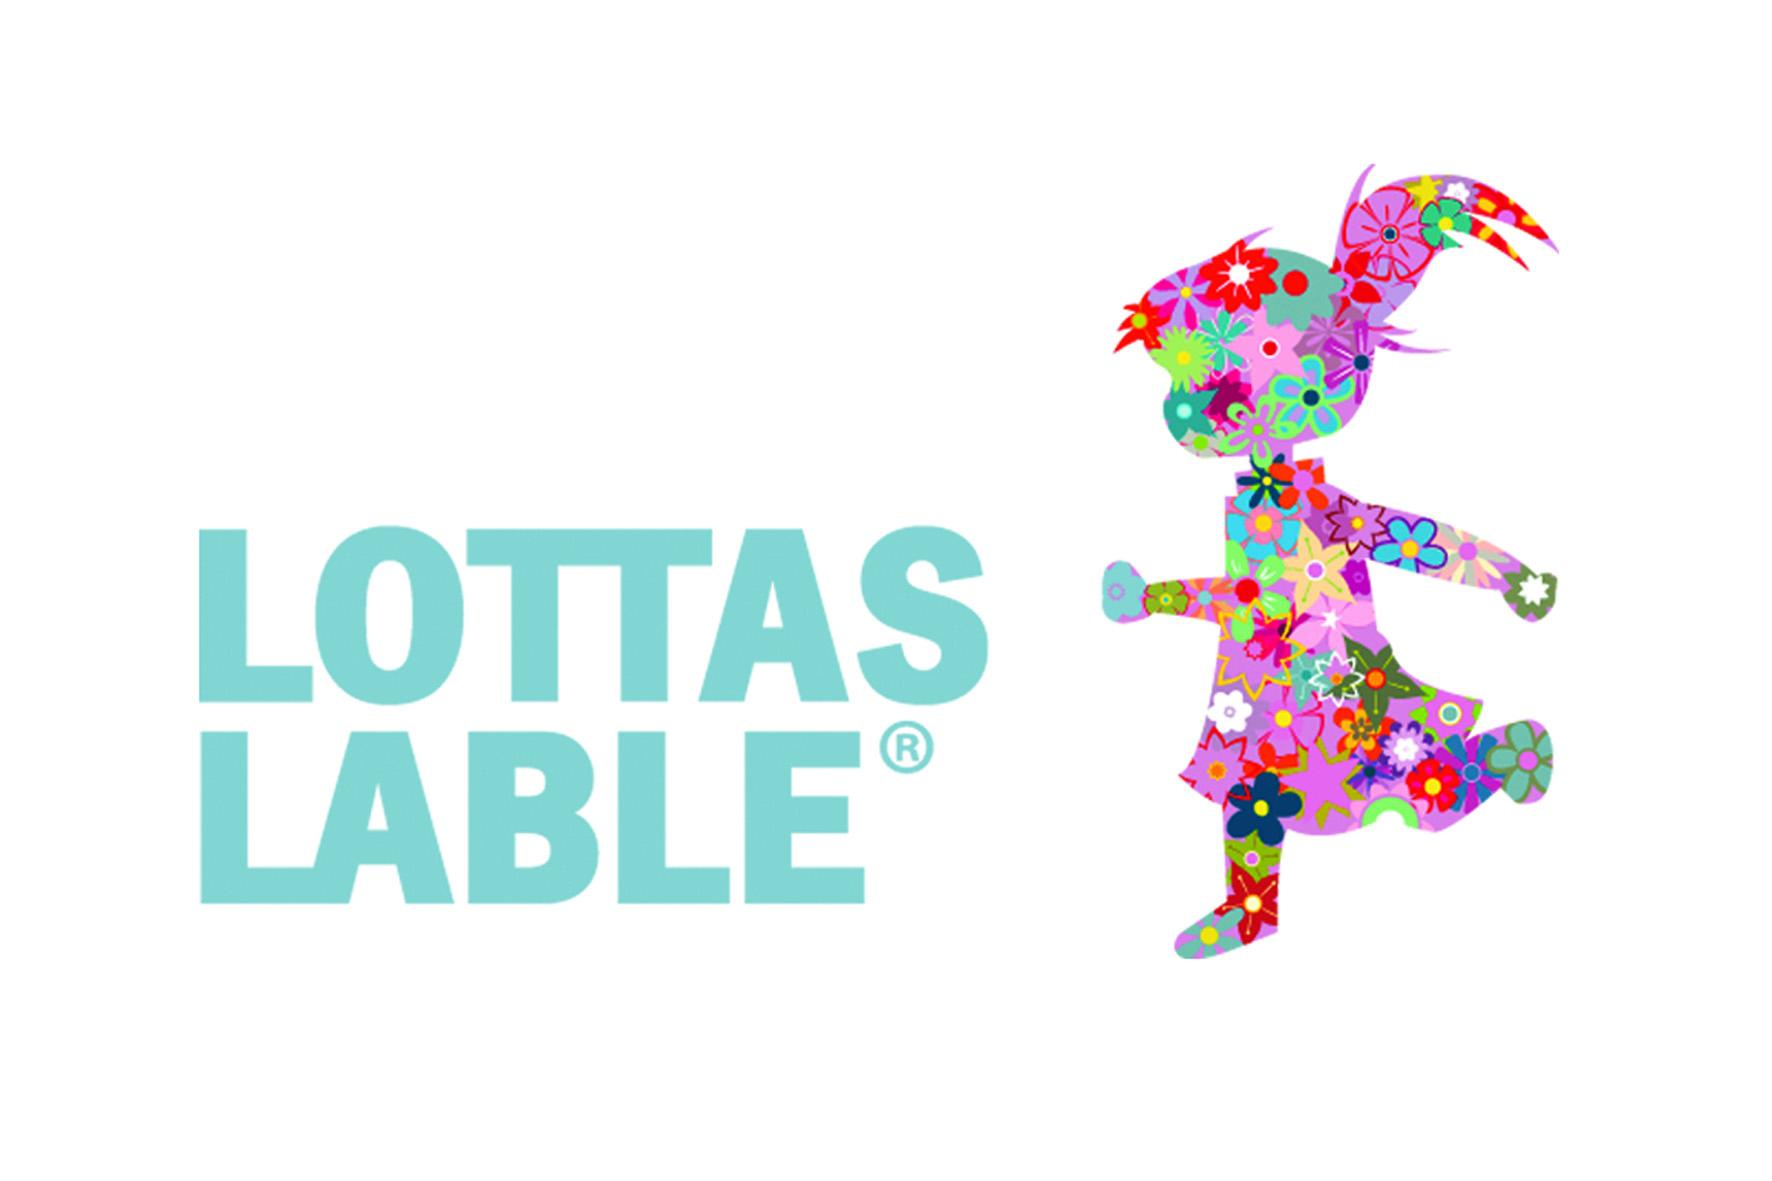 lottas-label